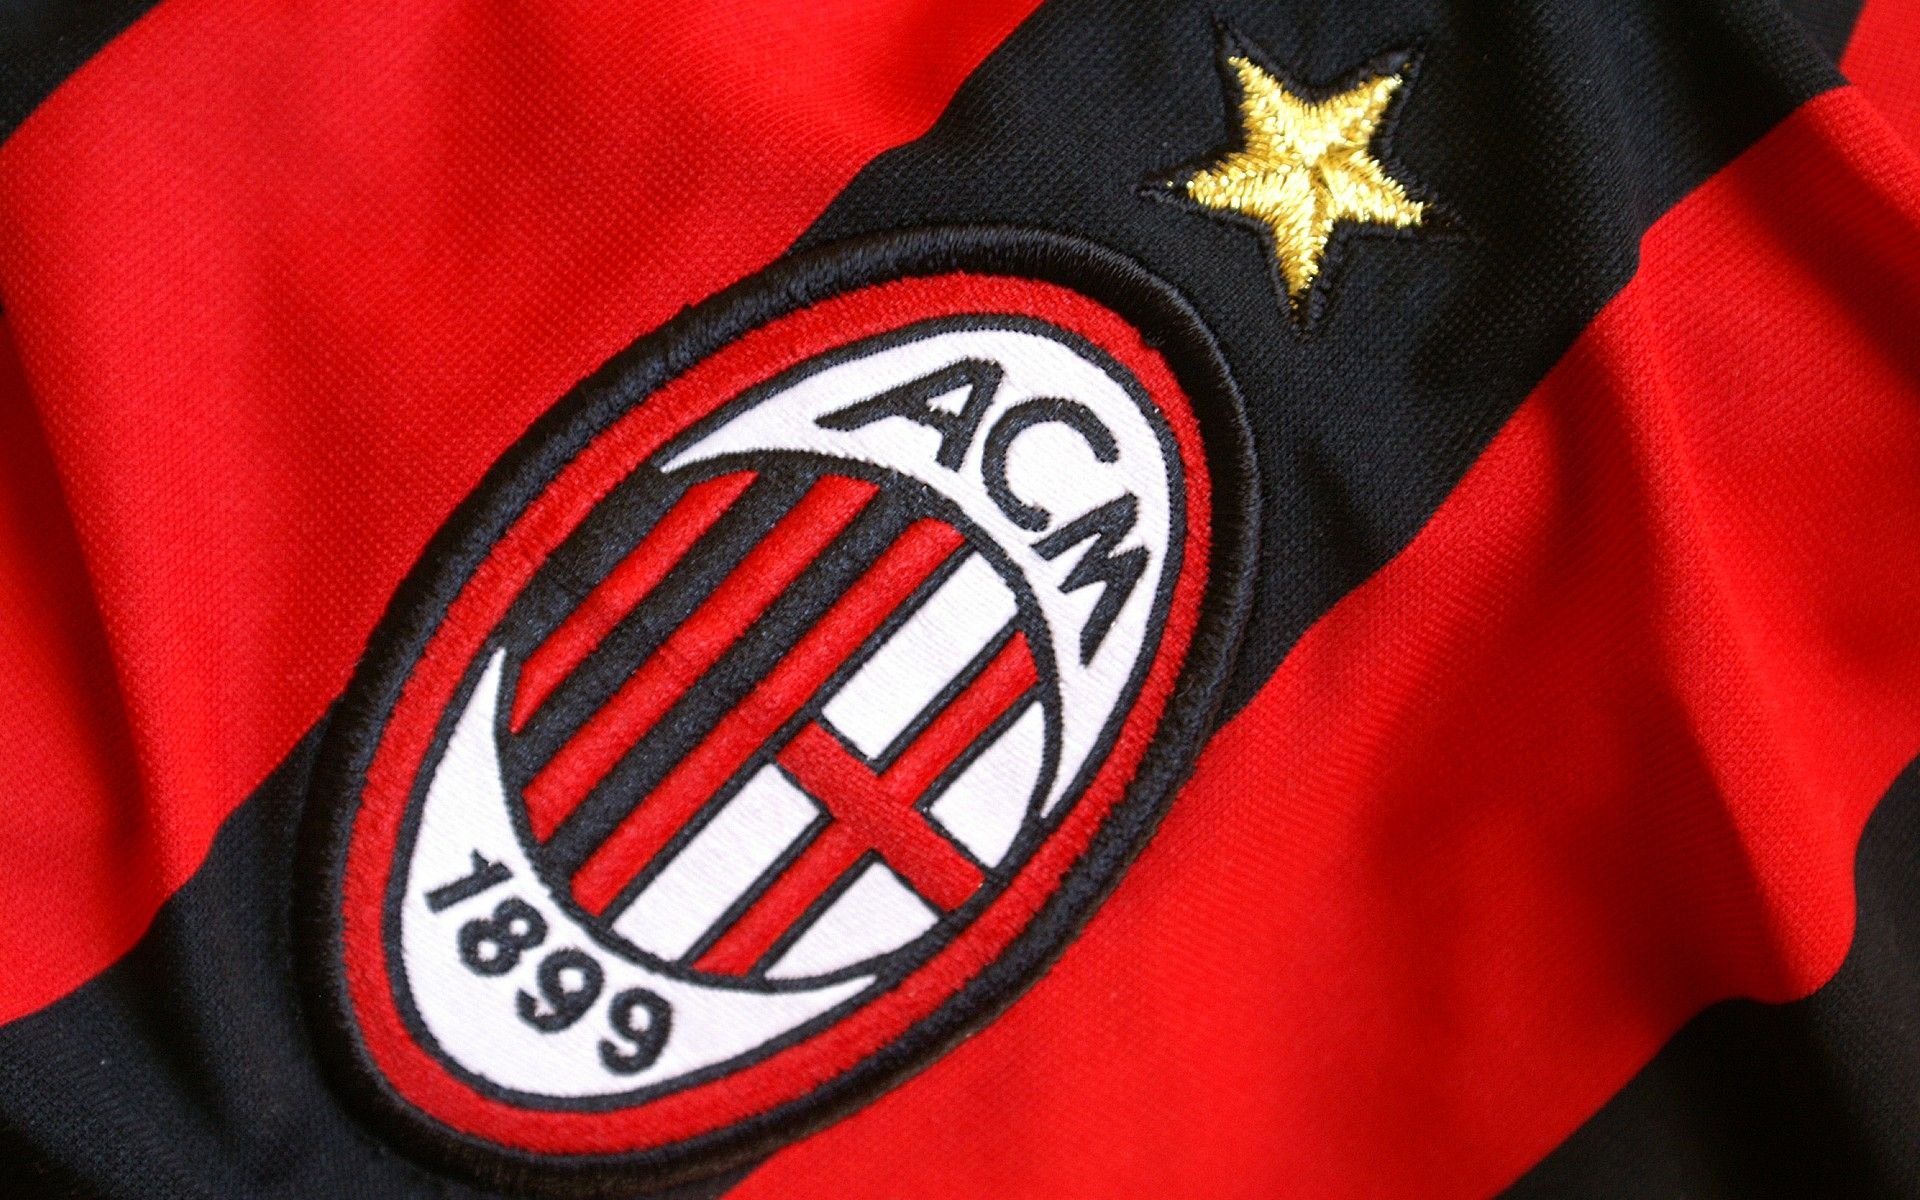 Hd wallpaper ac milan - Explore Ac Milan Milan Wallpaper And More